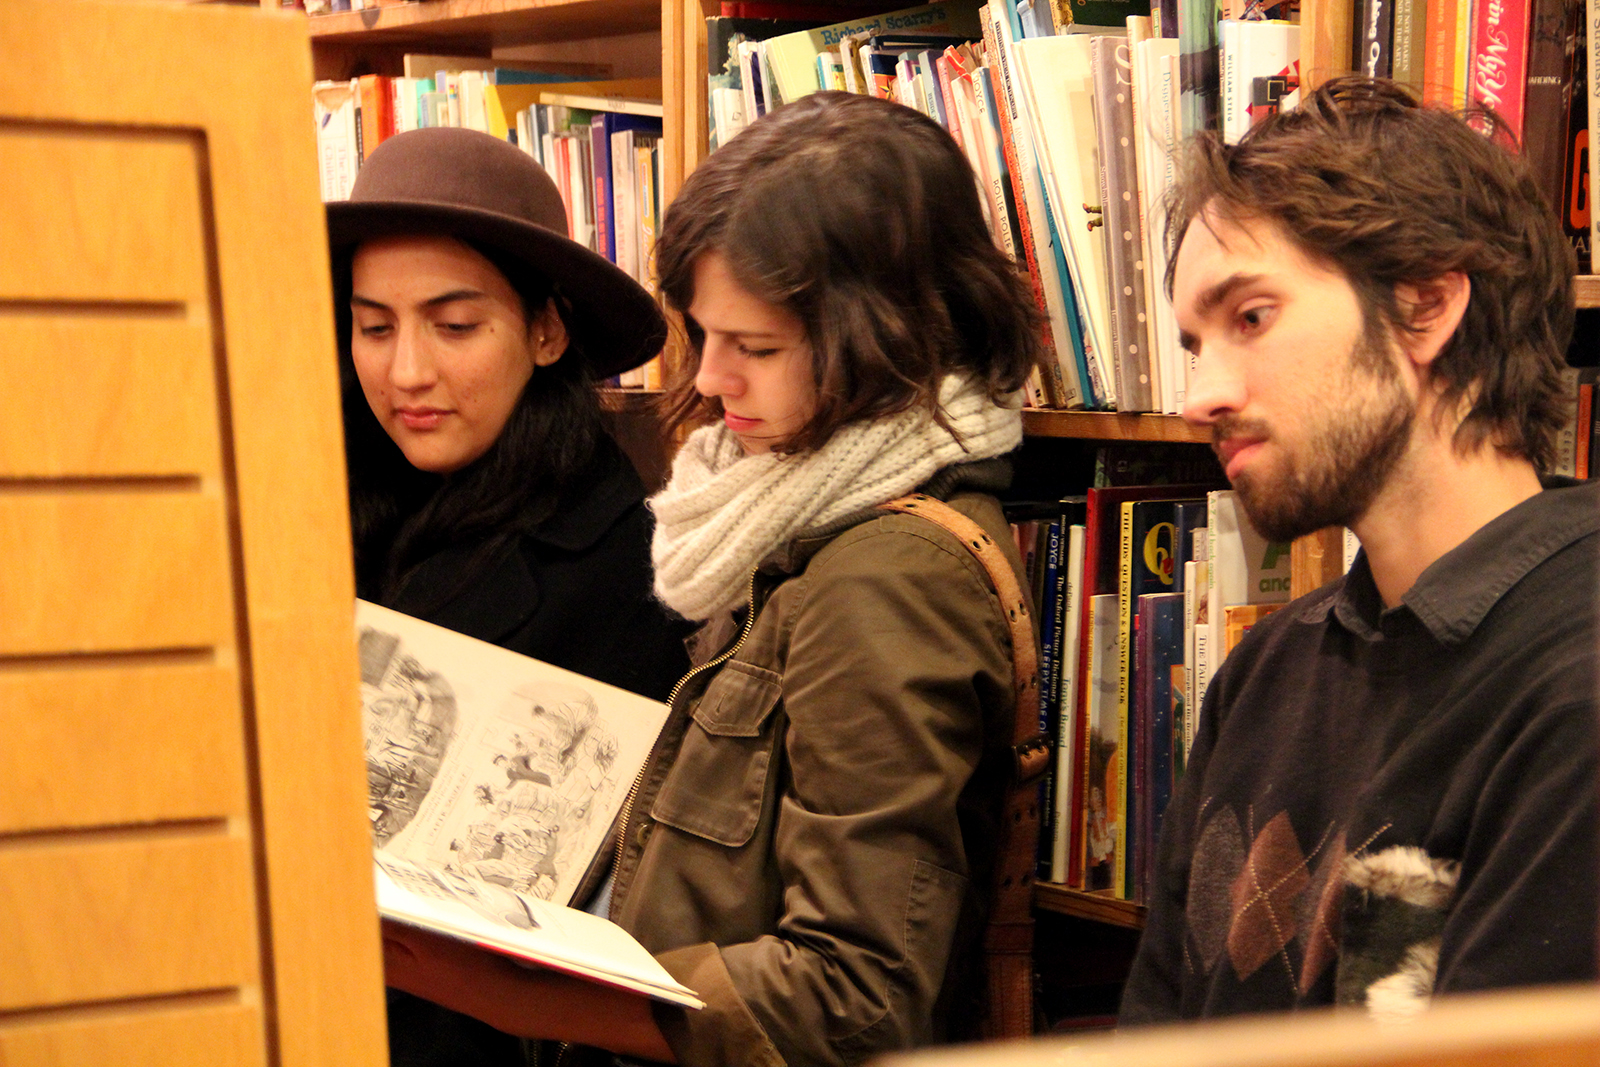 """People filled the store on the night of """"A Celebration of Adobe Bookshop,"""" and browsed the collection of books after the readings. Photo by Molly Oleson"""